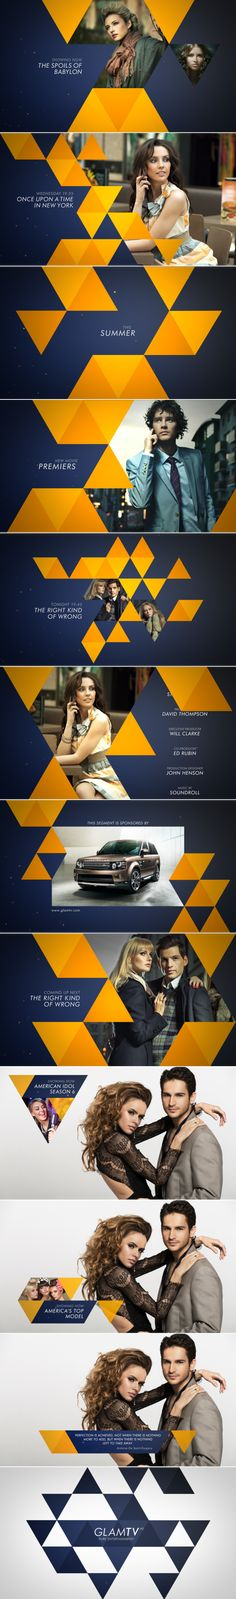 GLAM TV REBRANDING 2014 by Usman RAFI, via Behance